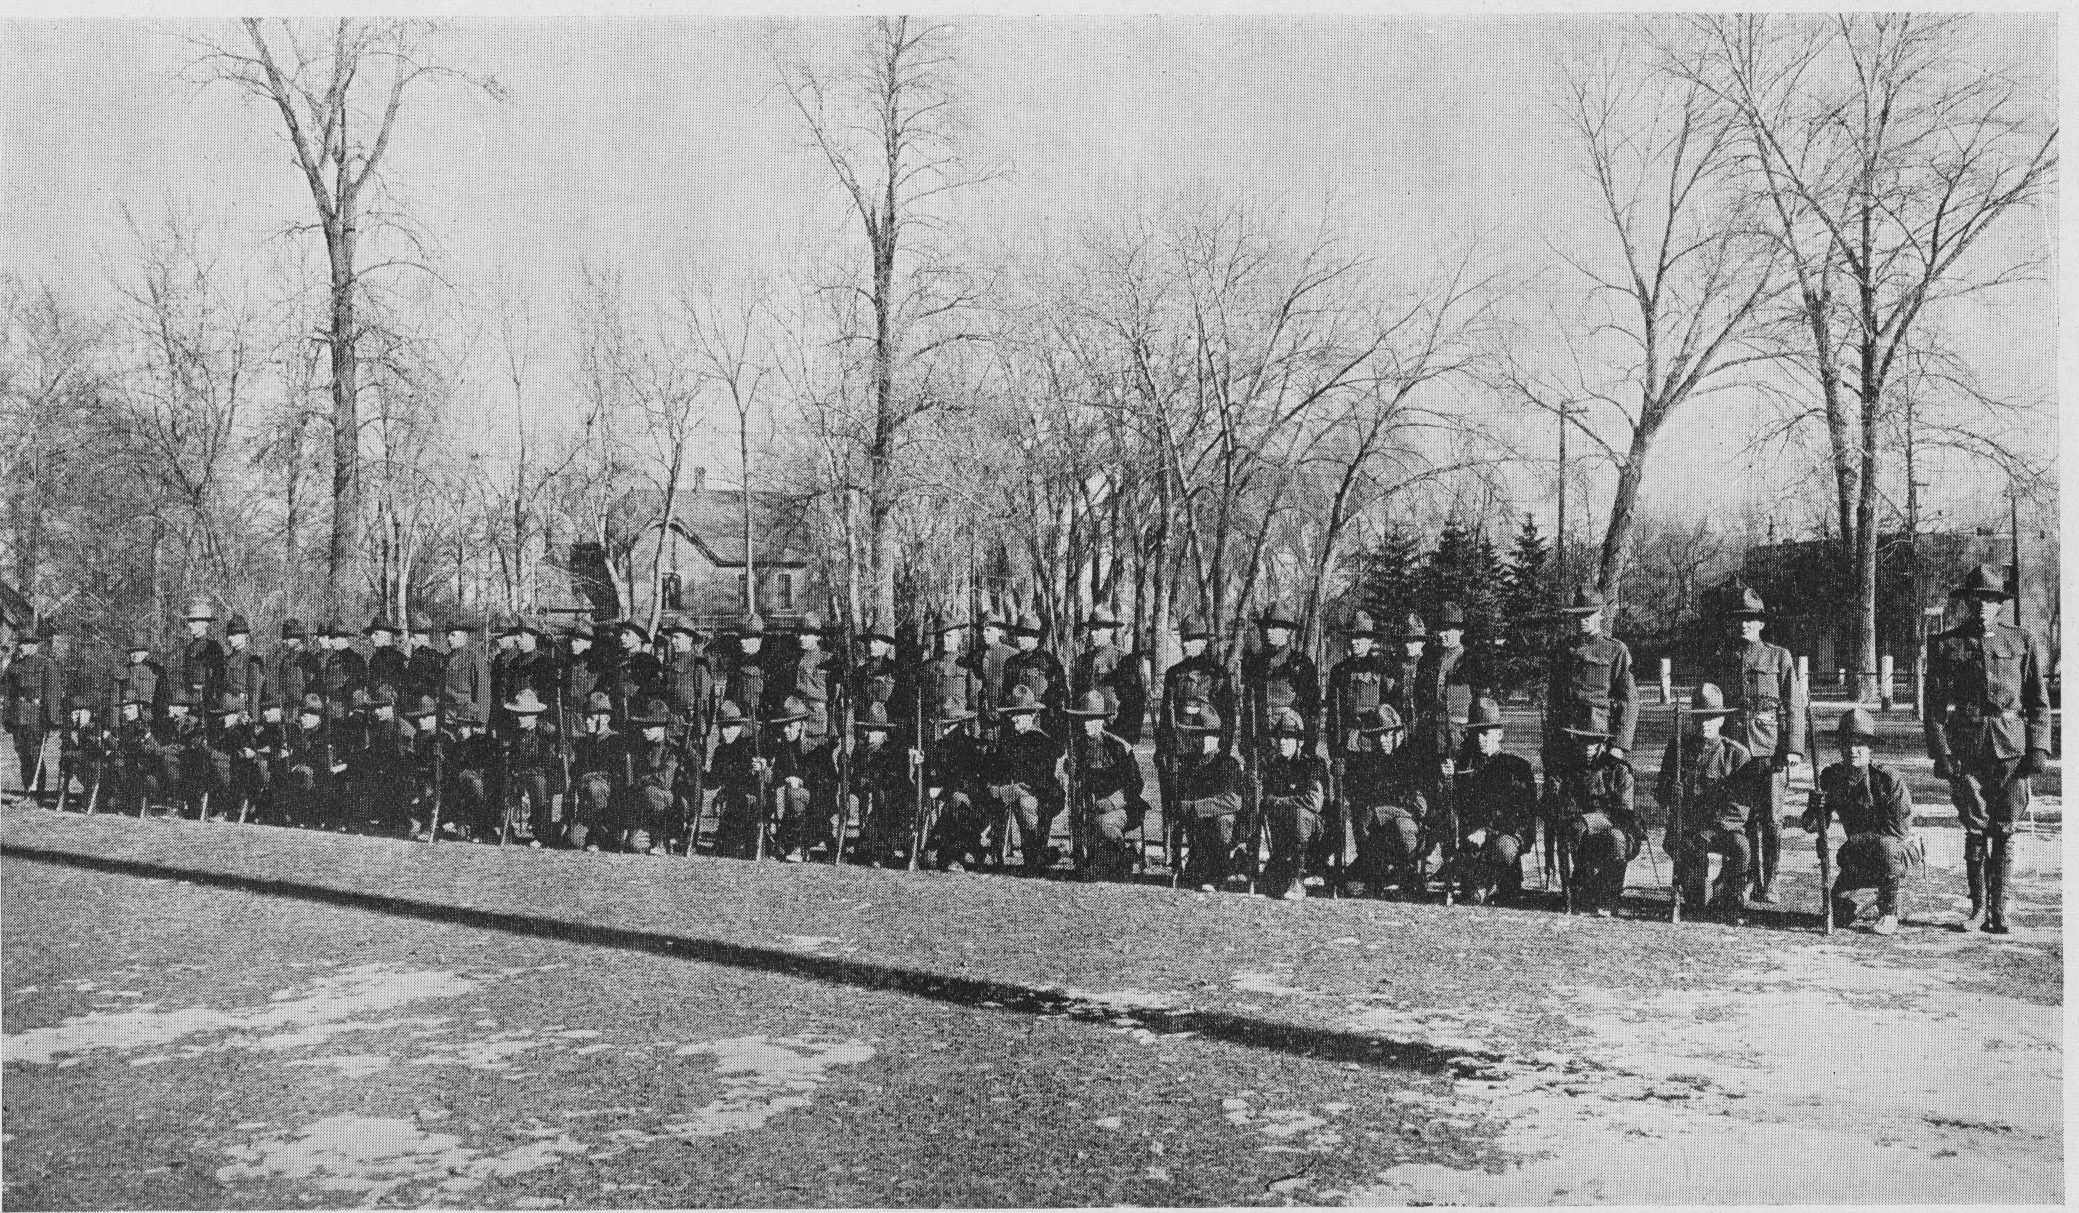 csu historical photo of the military lined up with face masks